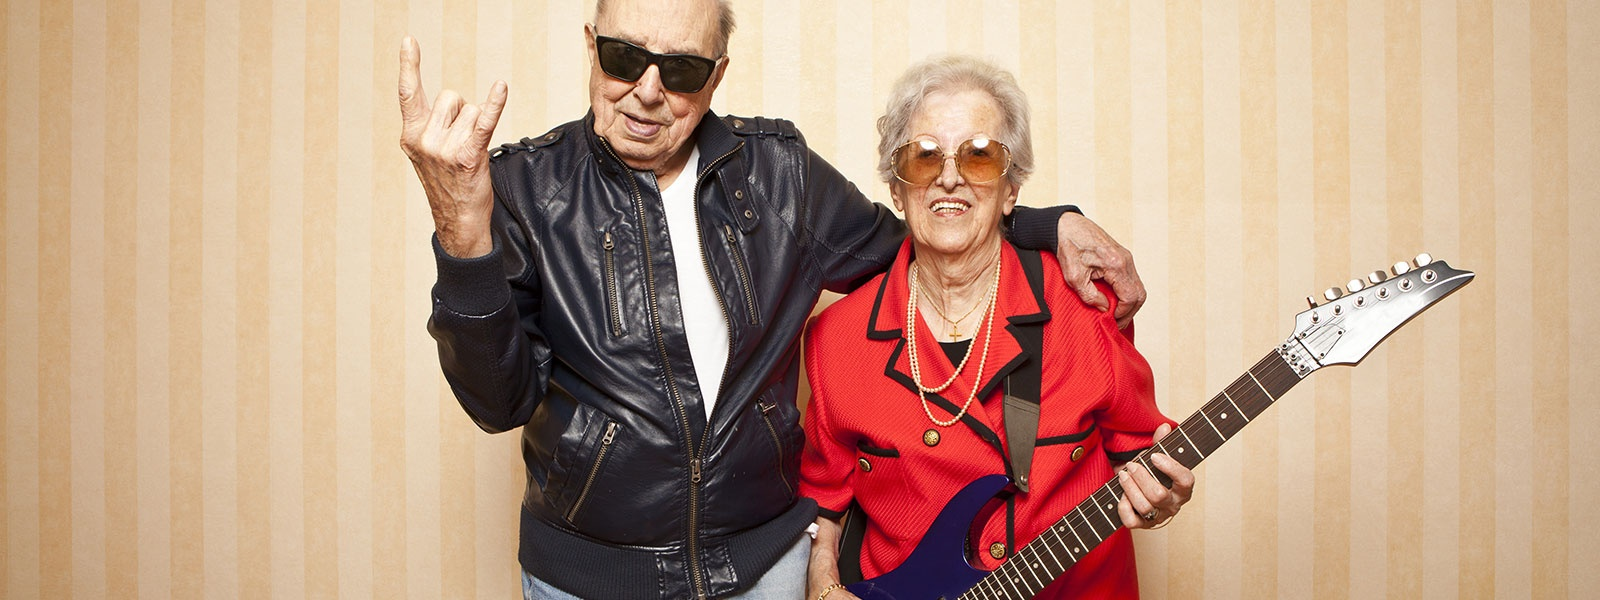 baby boomers influencing pop culture